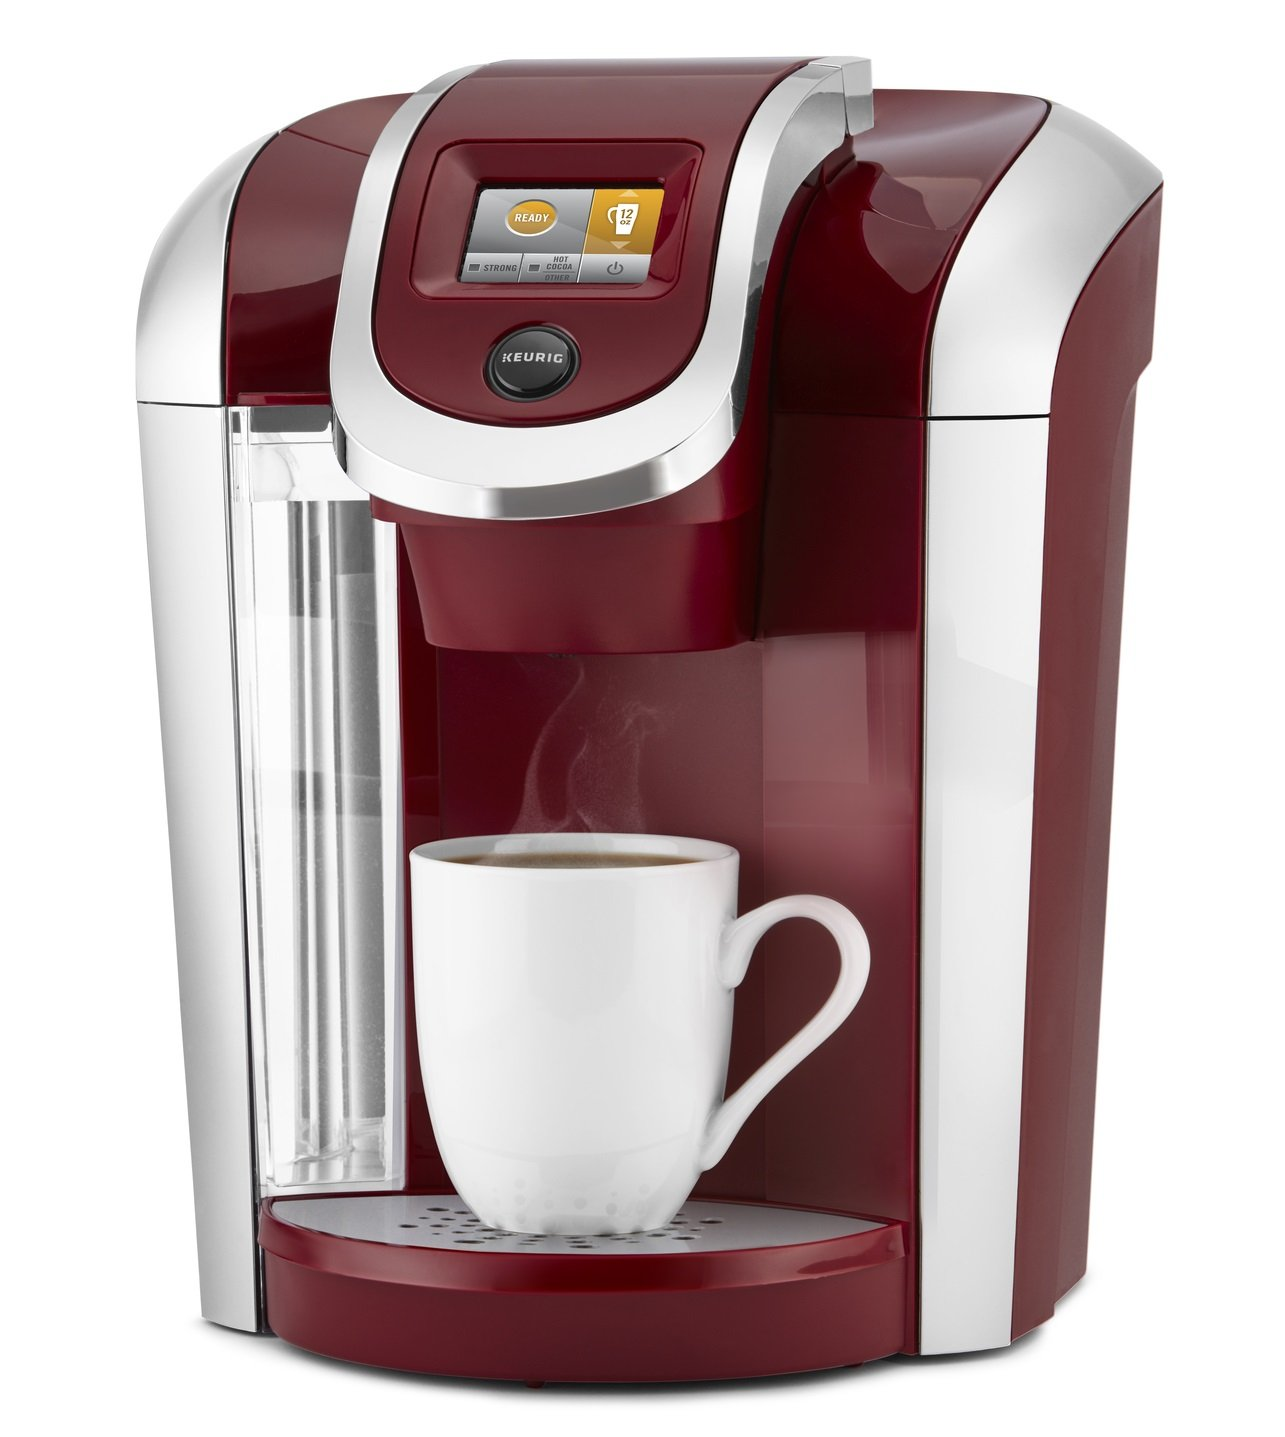 Keurig K475 Single Serve Programmable K- Cup Pod Coffee Maker with 12 oz brew size and temperature control, Vintage Red by Keurig (Image #2)